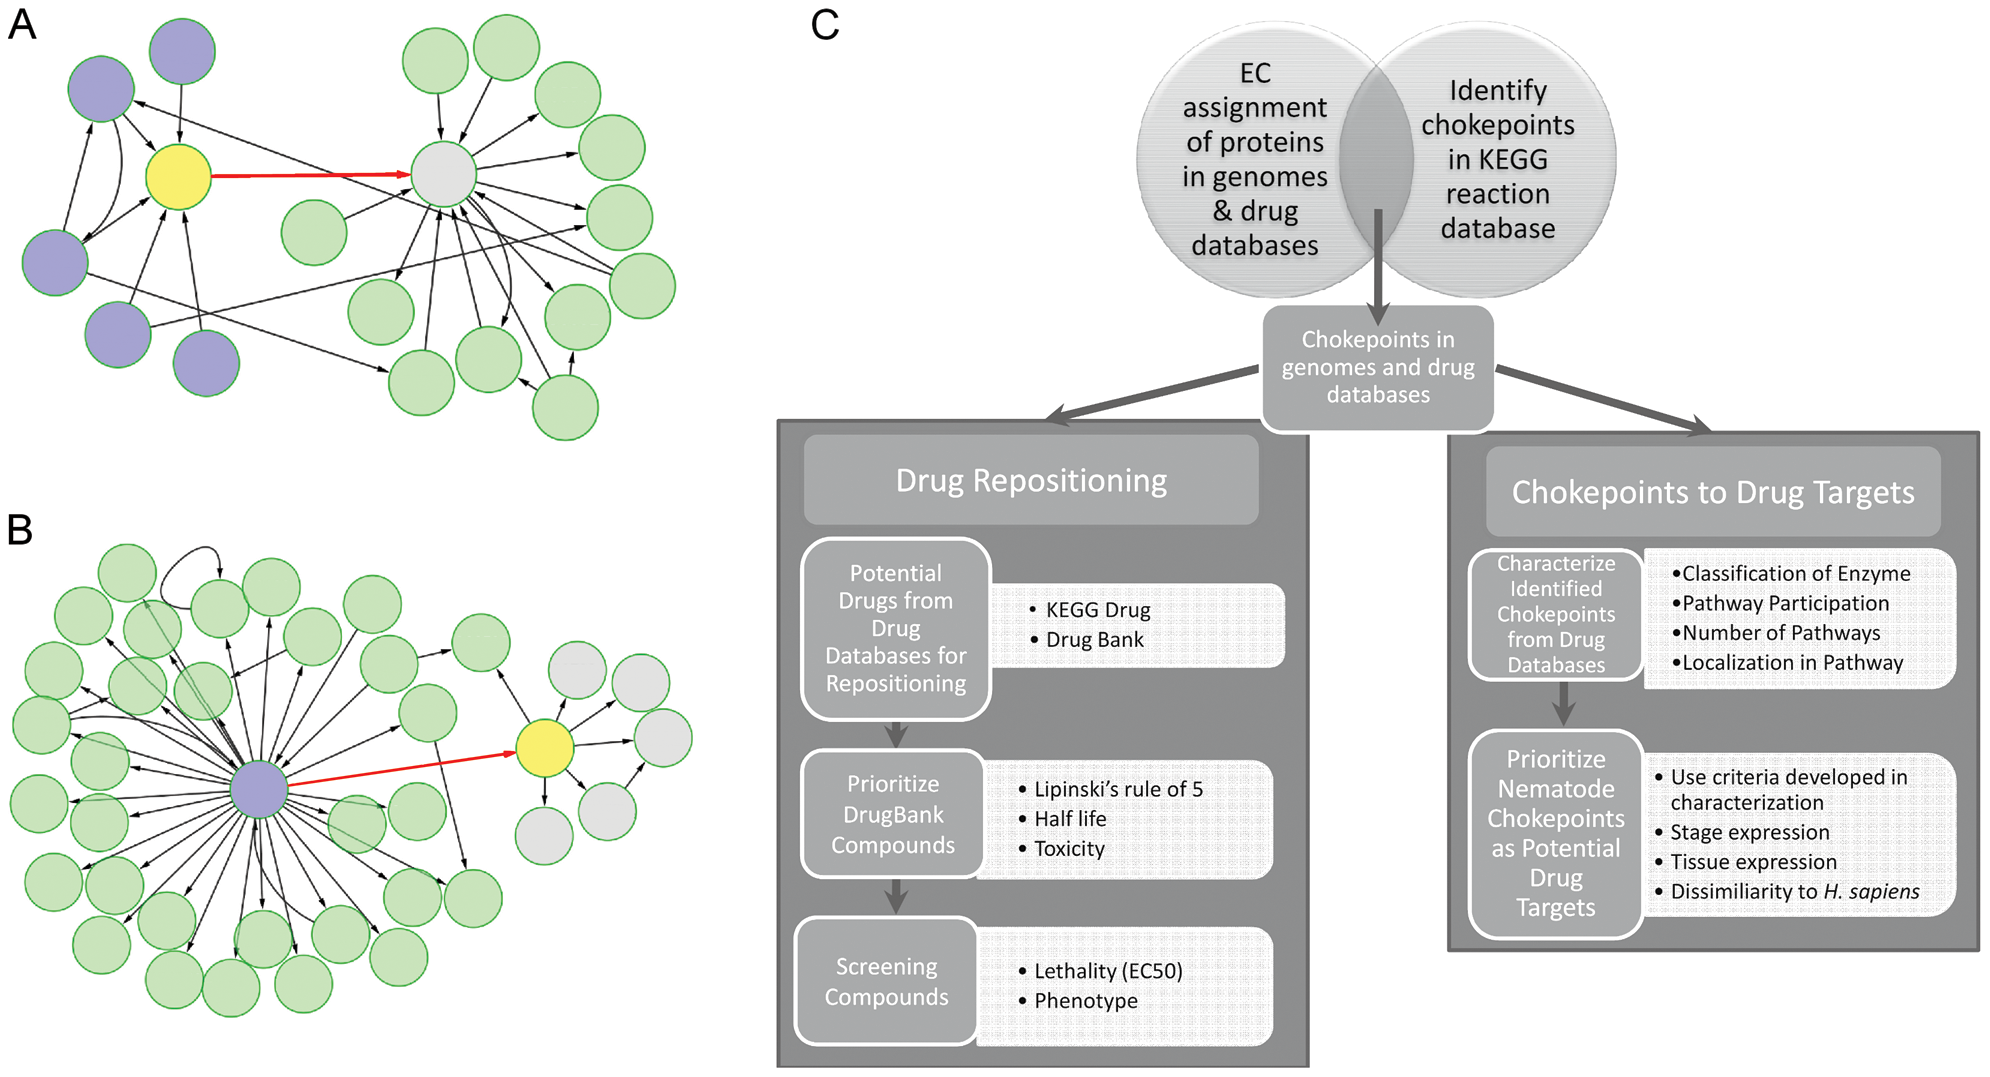 Workflow for identification, characterization, and prioritization of chokepoint drug targets and drug-like compounds.